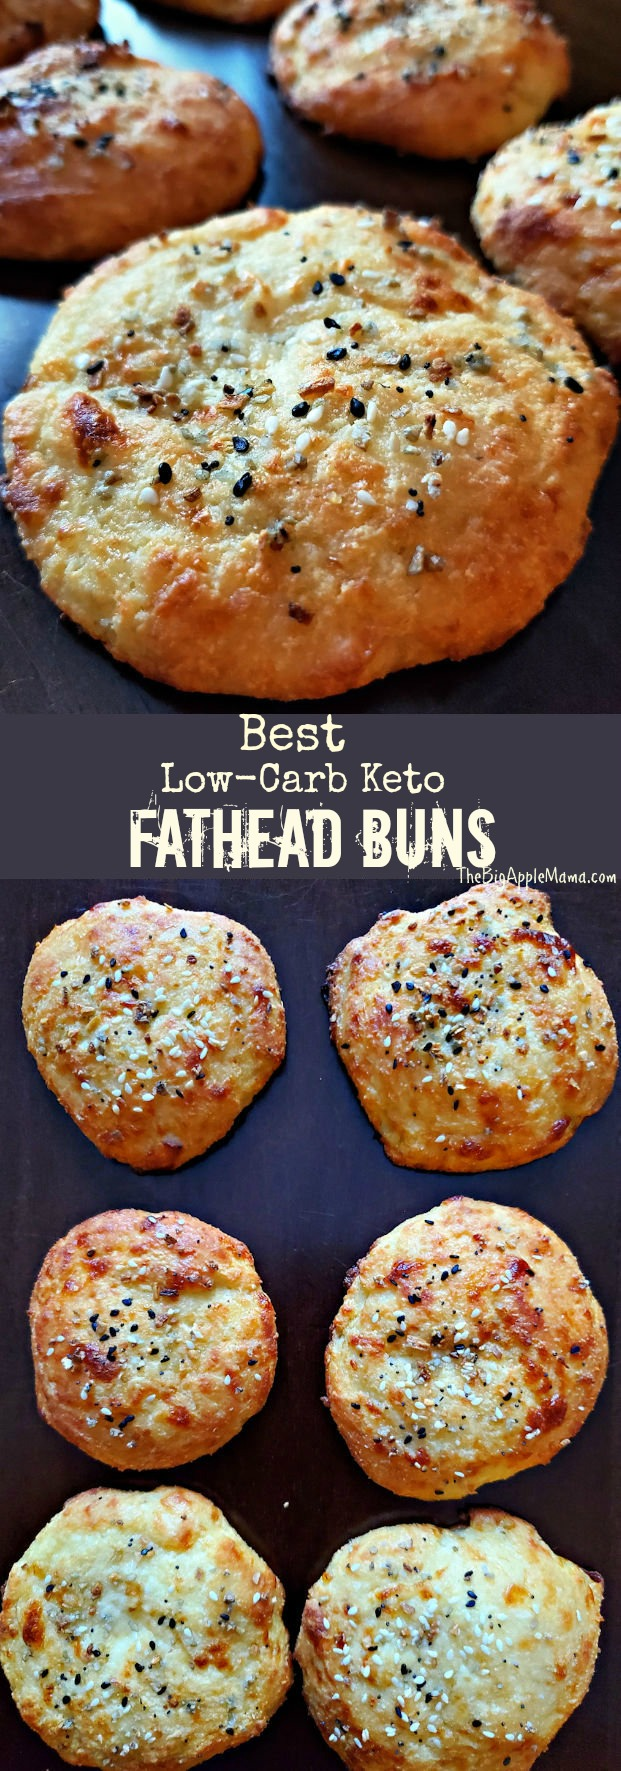 Best Low Carb Keto Bread buns or rolls made from Fathead dough